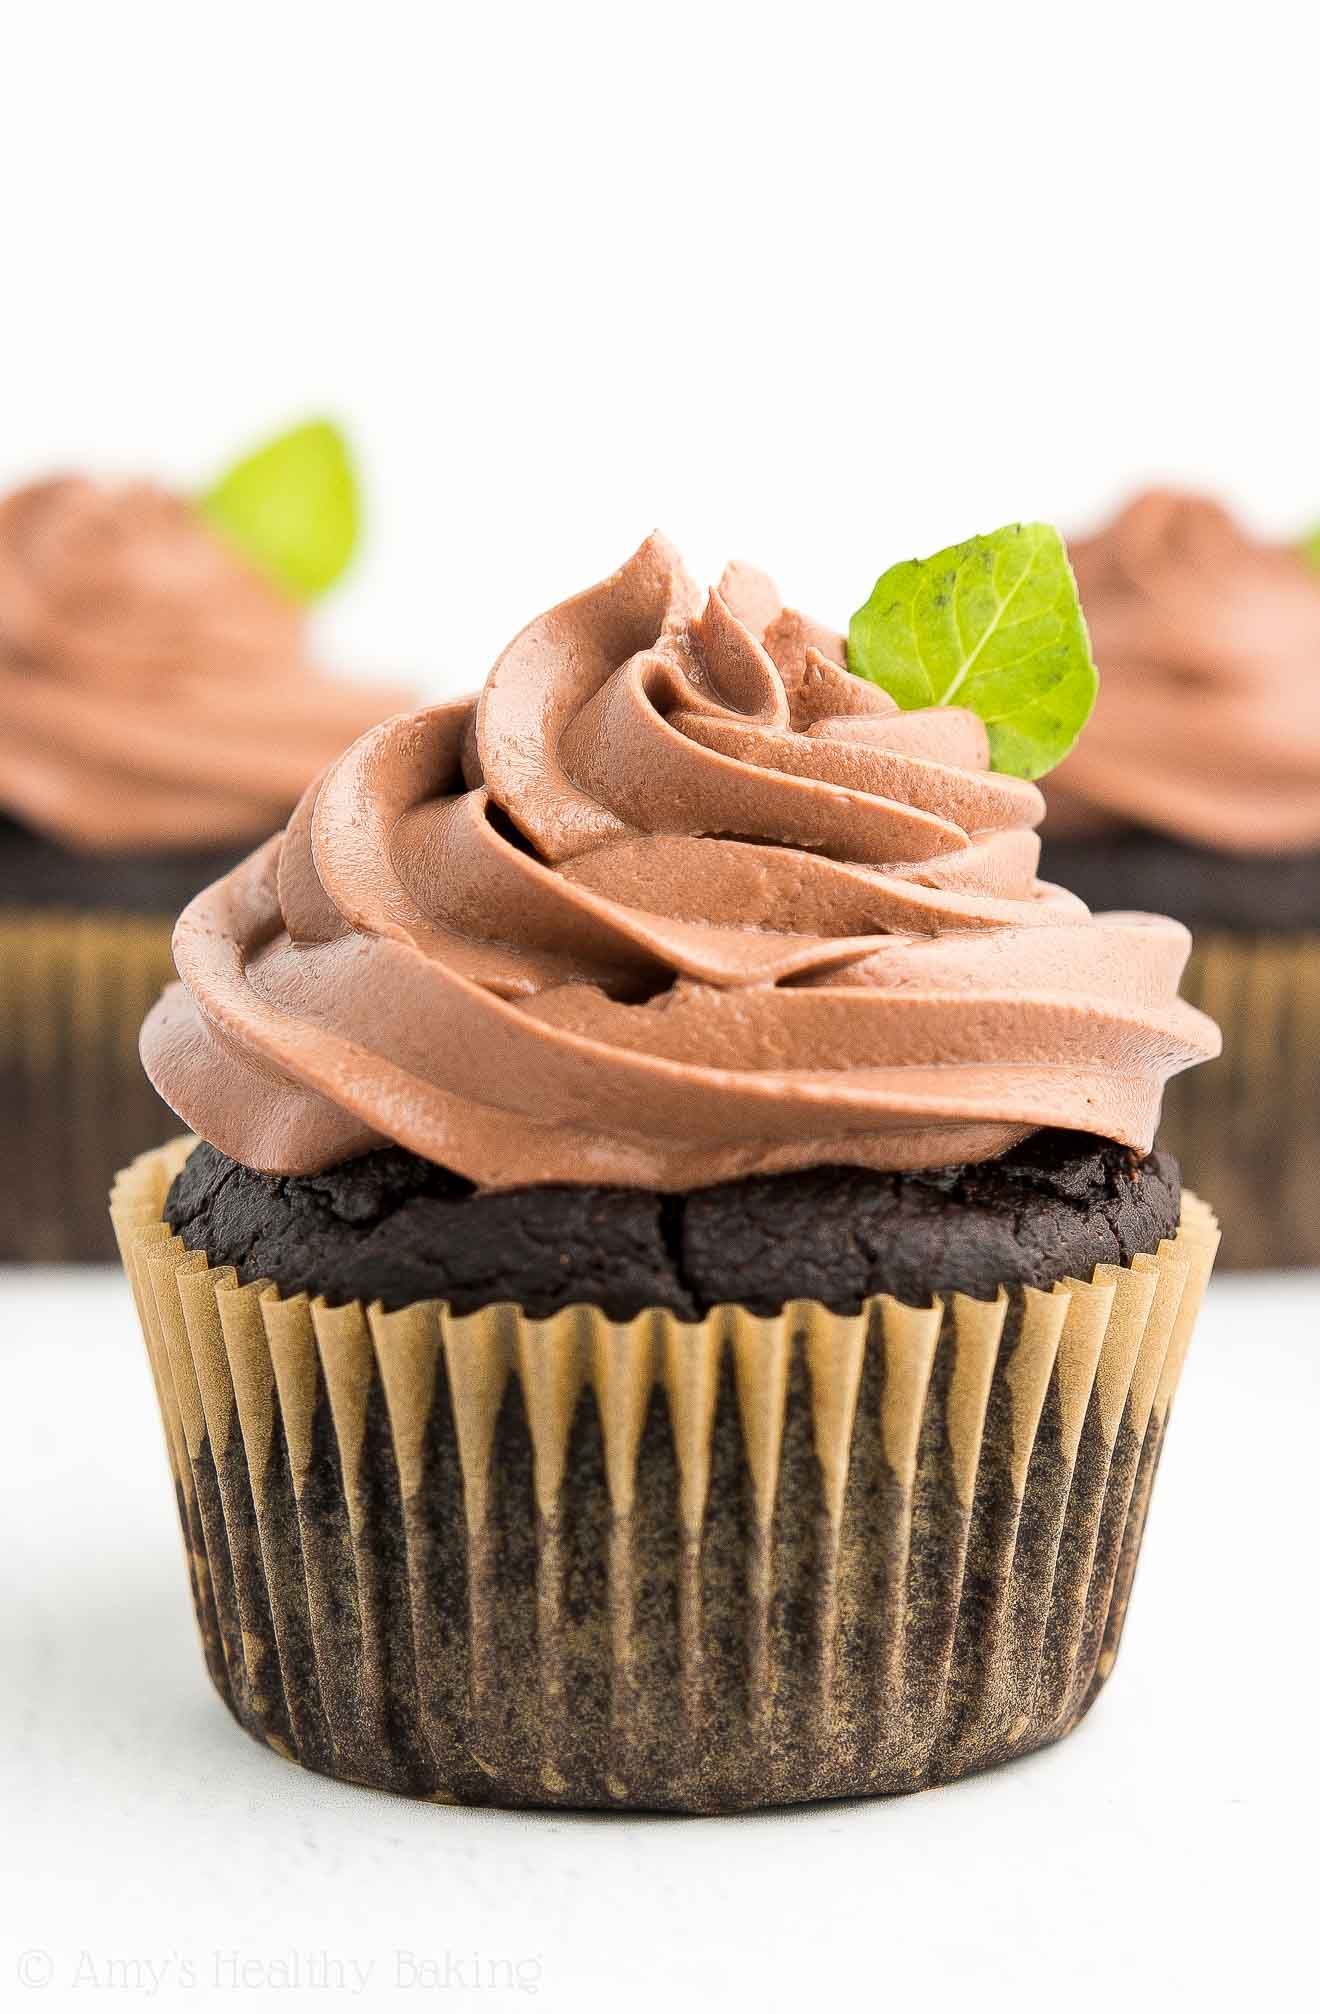 Three Healthy Sugar-Free Mint Chocolate Cupcakes, topped with Chocolate Greek Yogurt Frosting